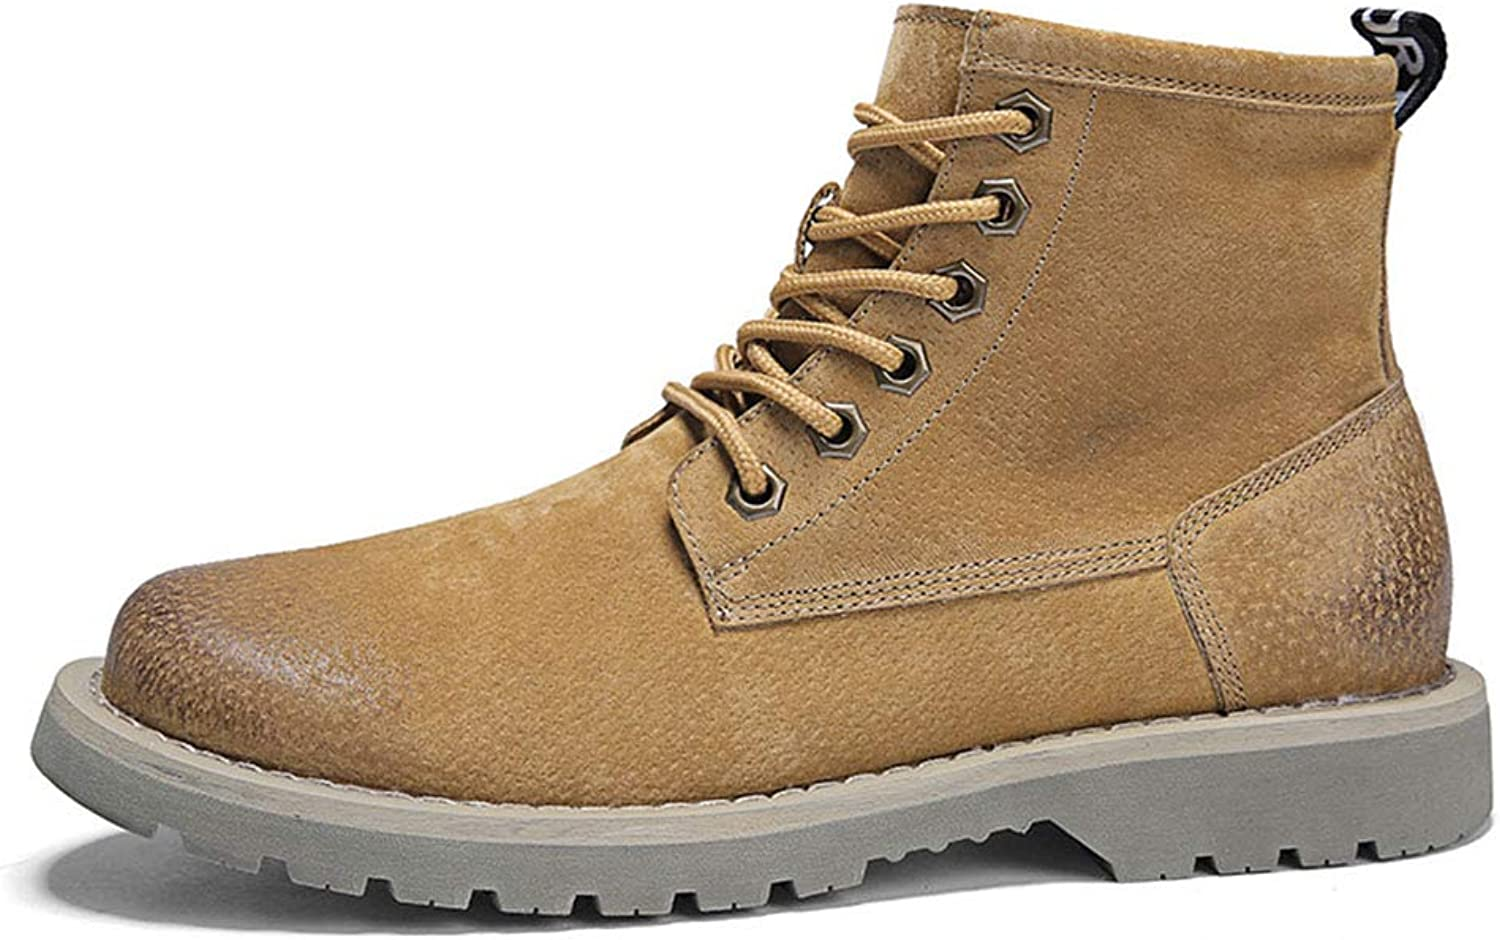 New Men's Boots Winter Fashion Casual Martin Boots High-top Outdoor Tooling shoes Motorcycle Boots (color   C, Size   39)